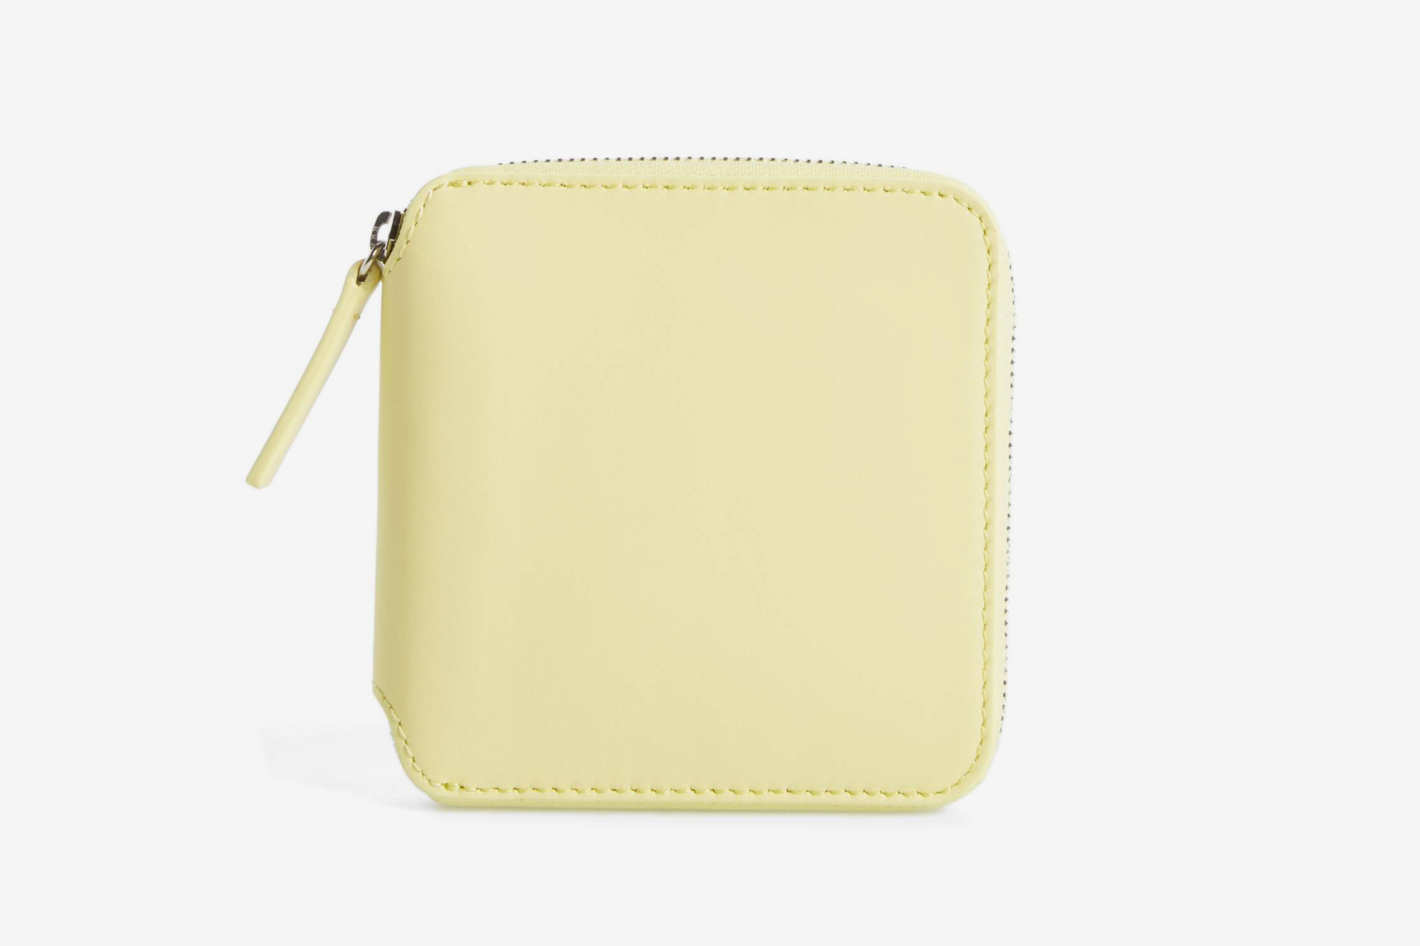 Baggu Zip Around Square Leather Wallet